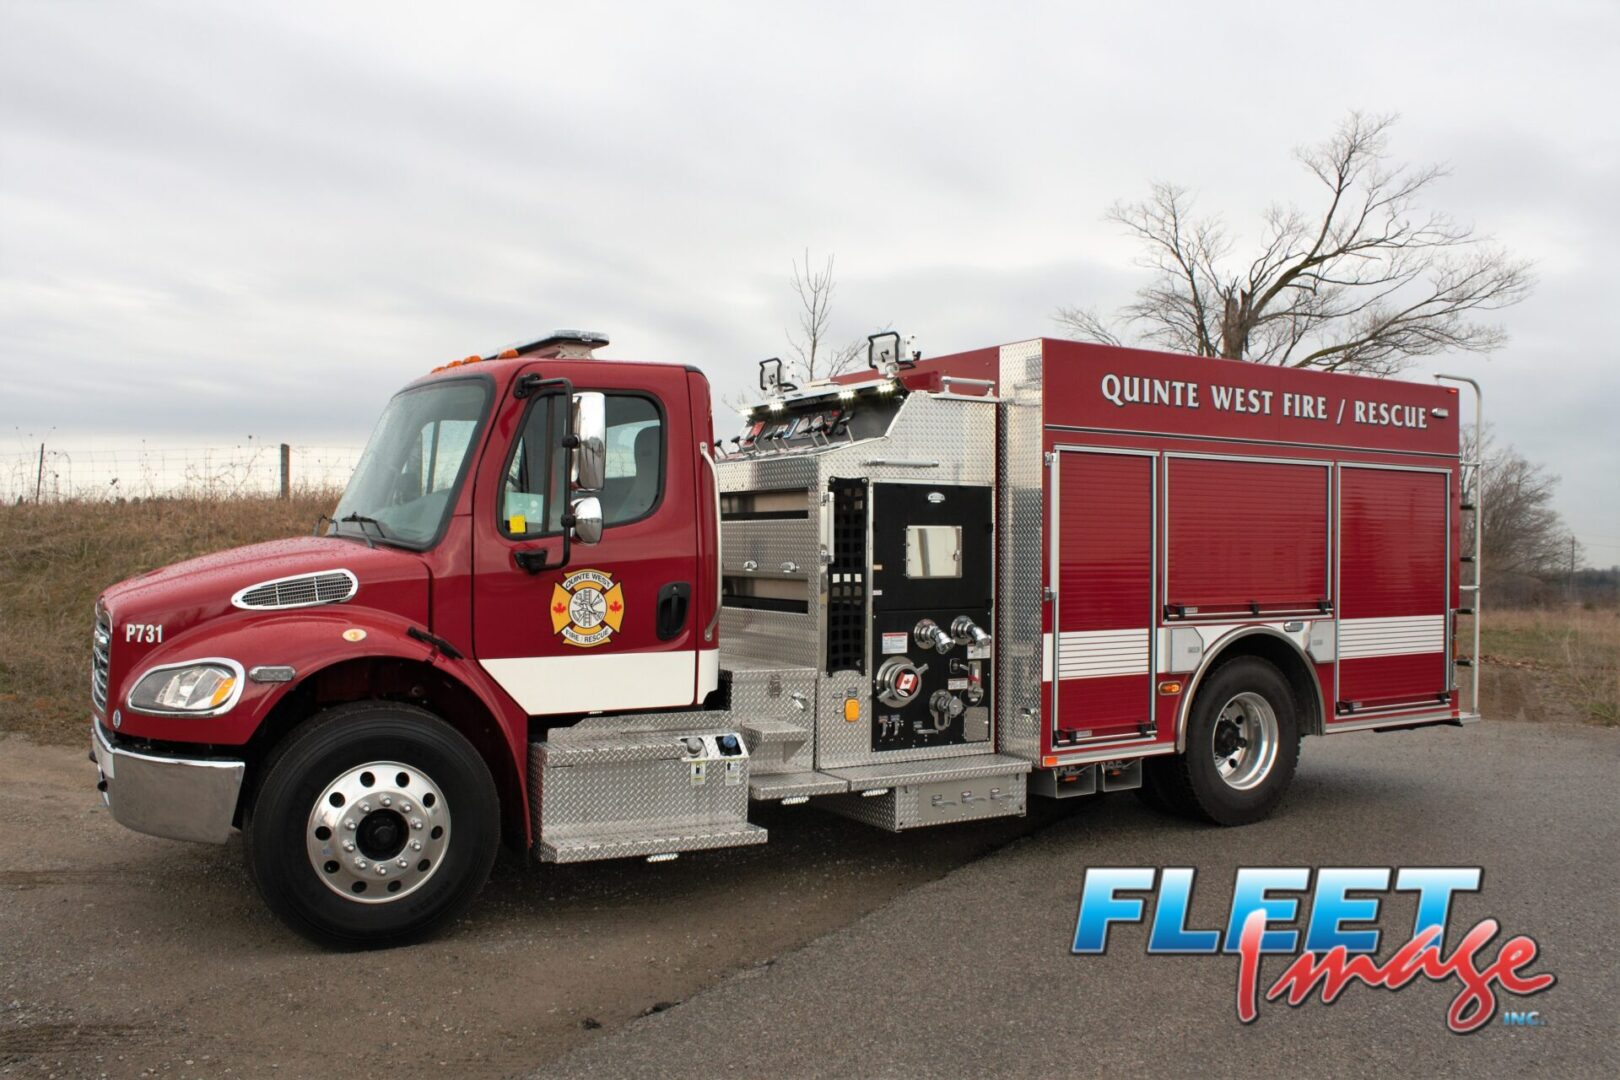 QUINTE WEST FIRE/RESCUE decal on a fire truck